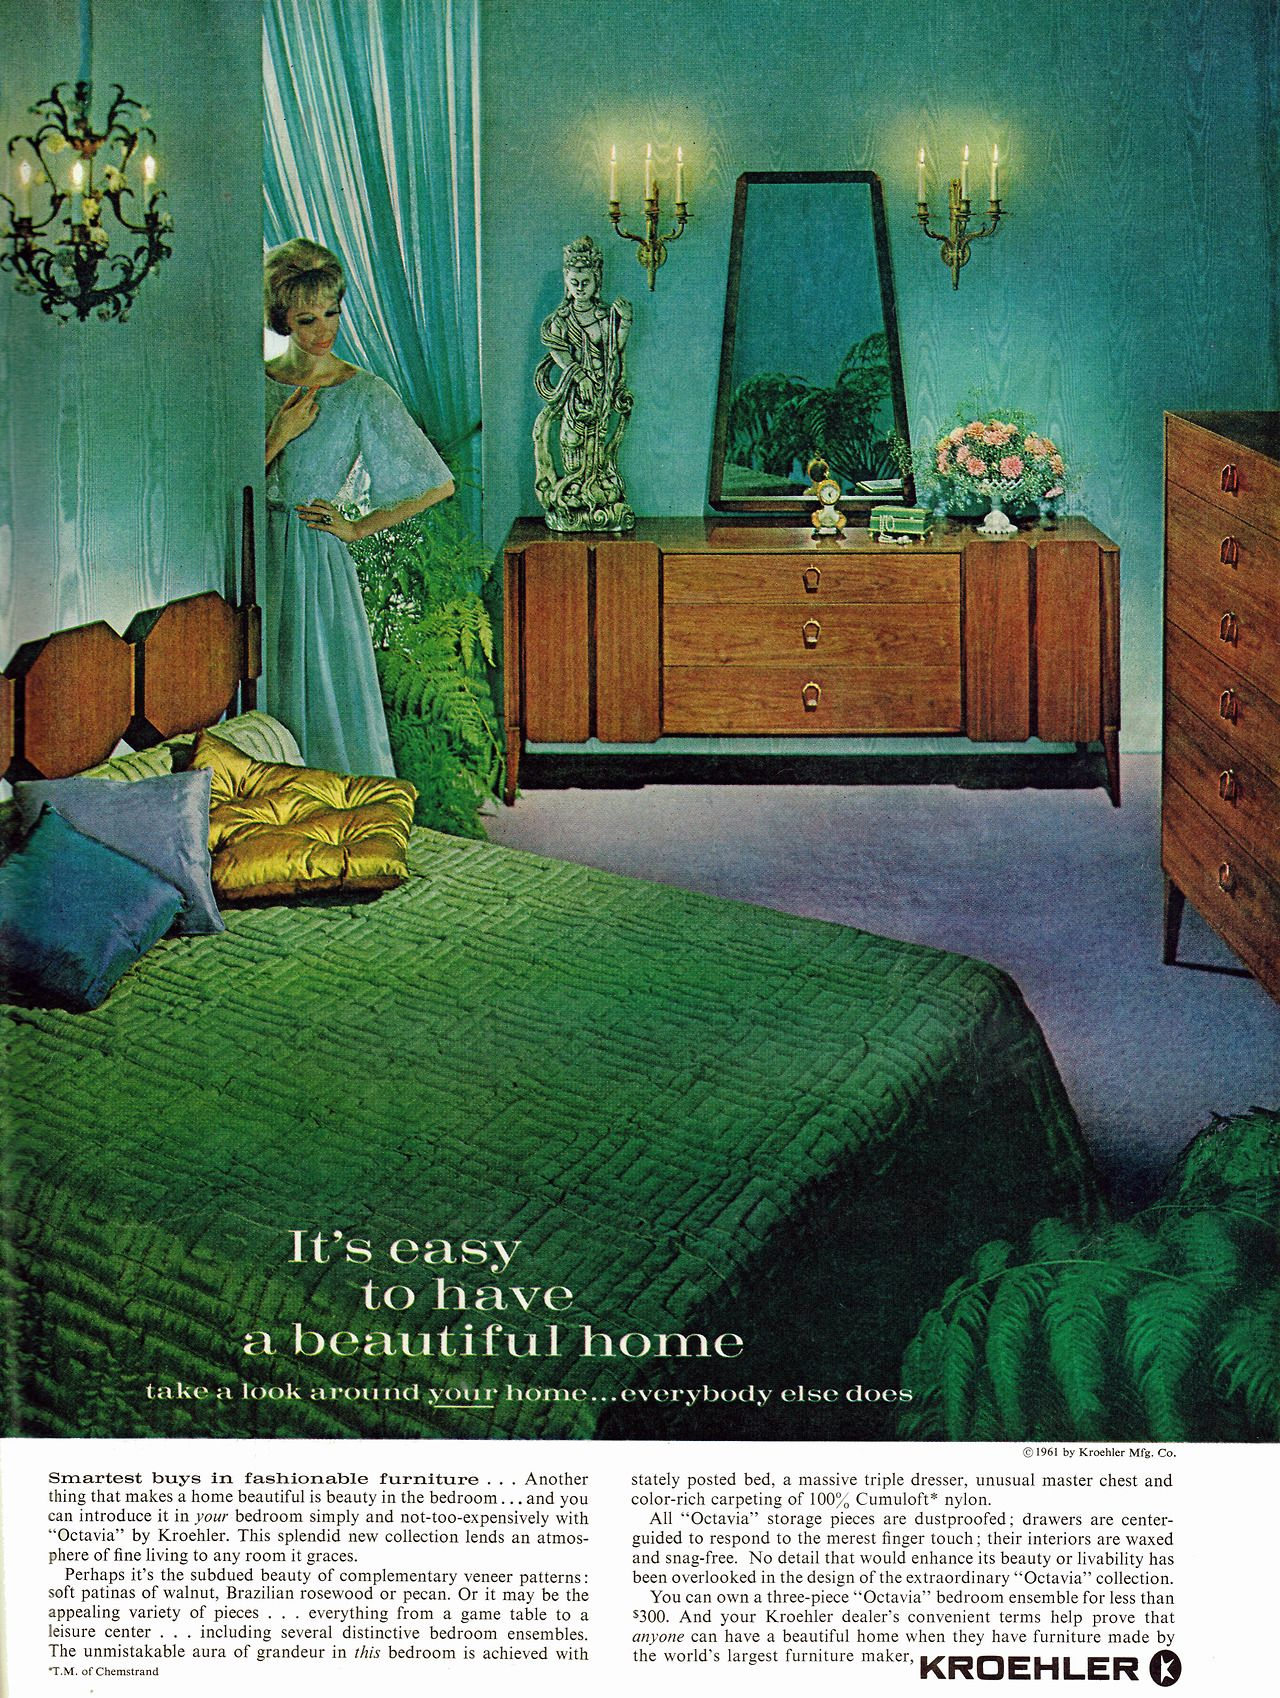 Kroehler Bedroom Furniture 1961